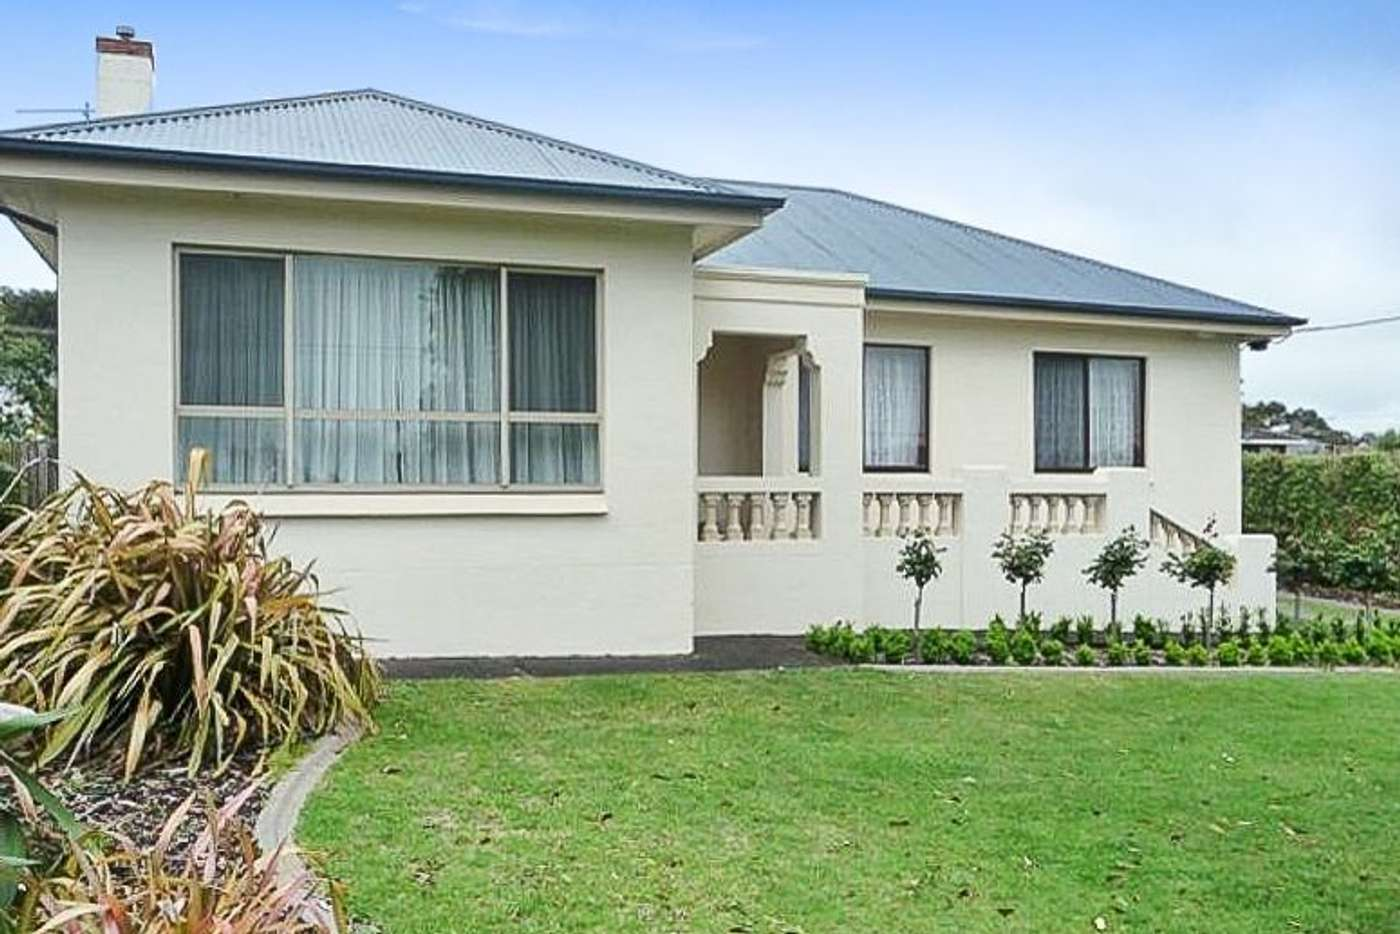 Main view of Homely house listing, 6 Fairlie Street, Mount Gambier SA 5290